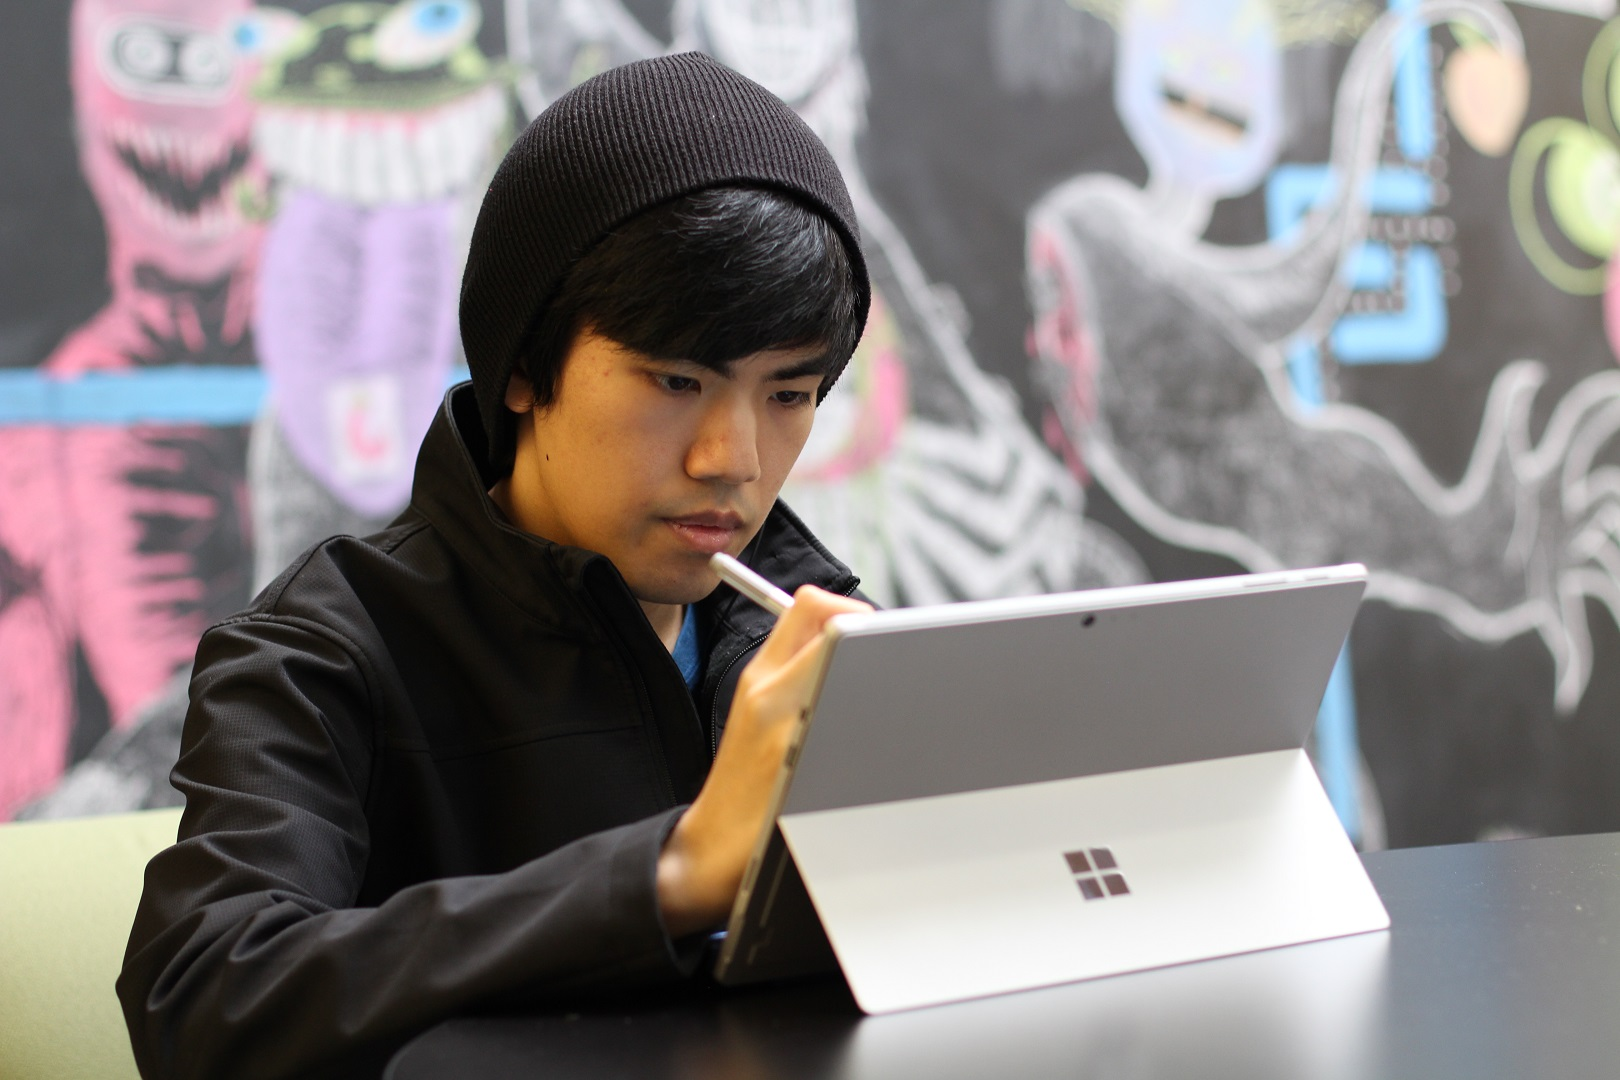 Marvin's holding a Surface pen in front of his Surface